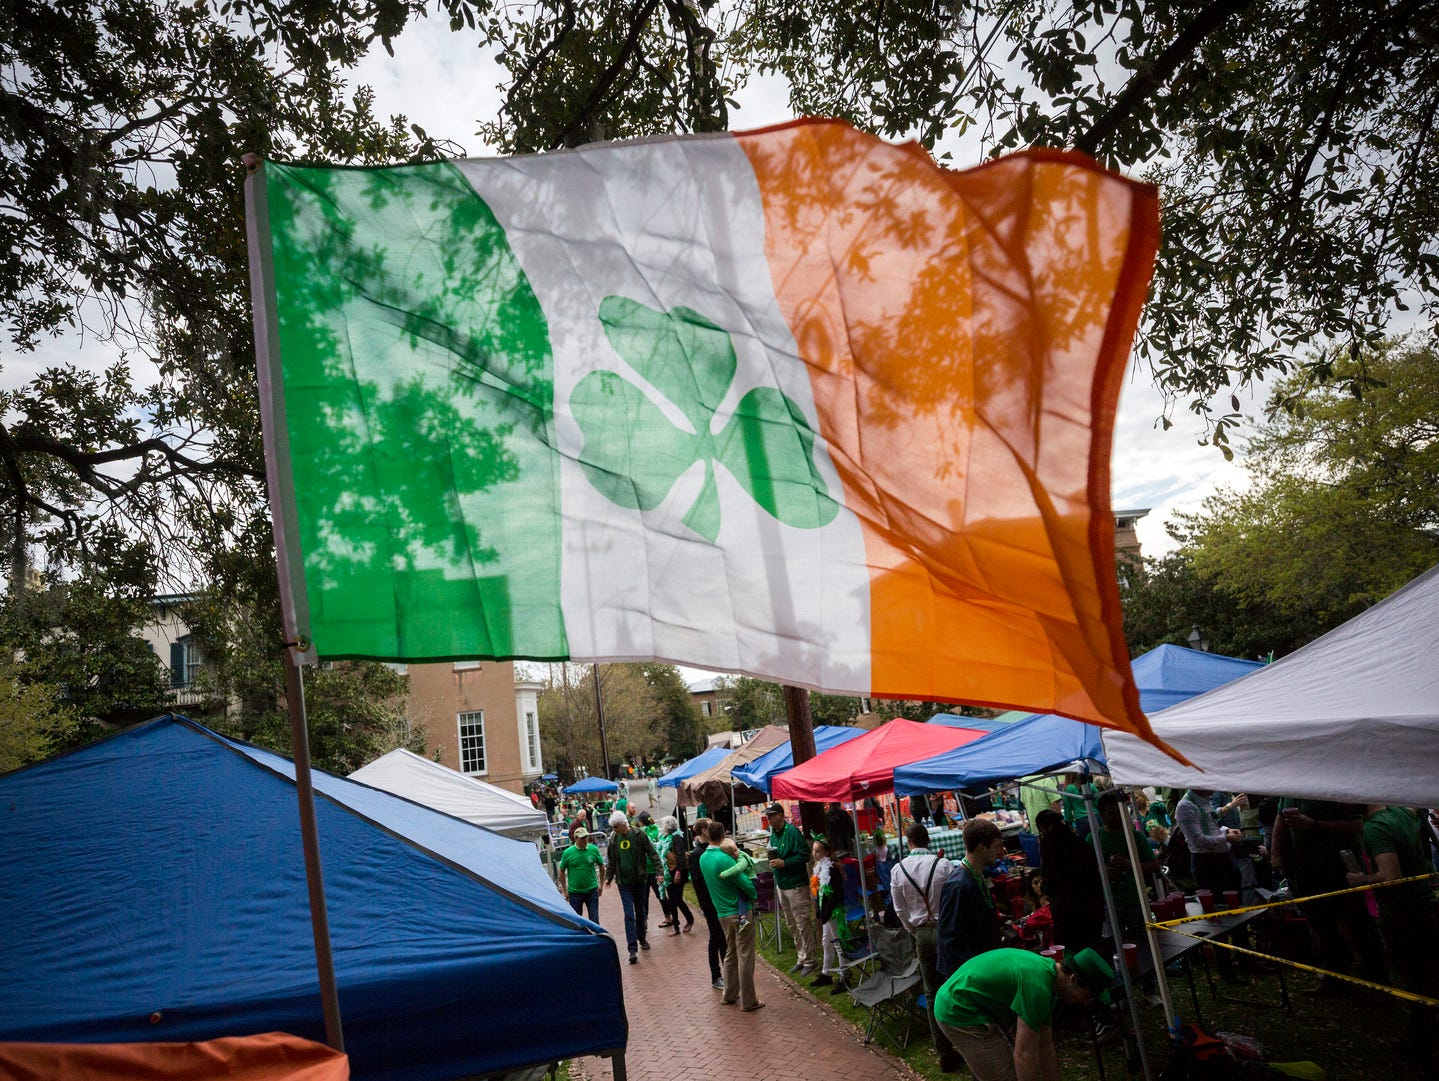 Revelers prepare for the 195-year-old St. Patrick's Day parade on one of the city's historic squares, Saturday, March 16, 2019, in Savannah, Ga.